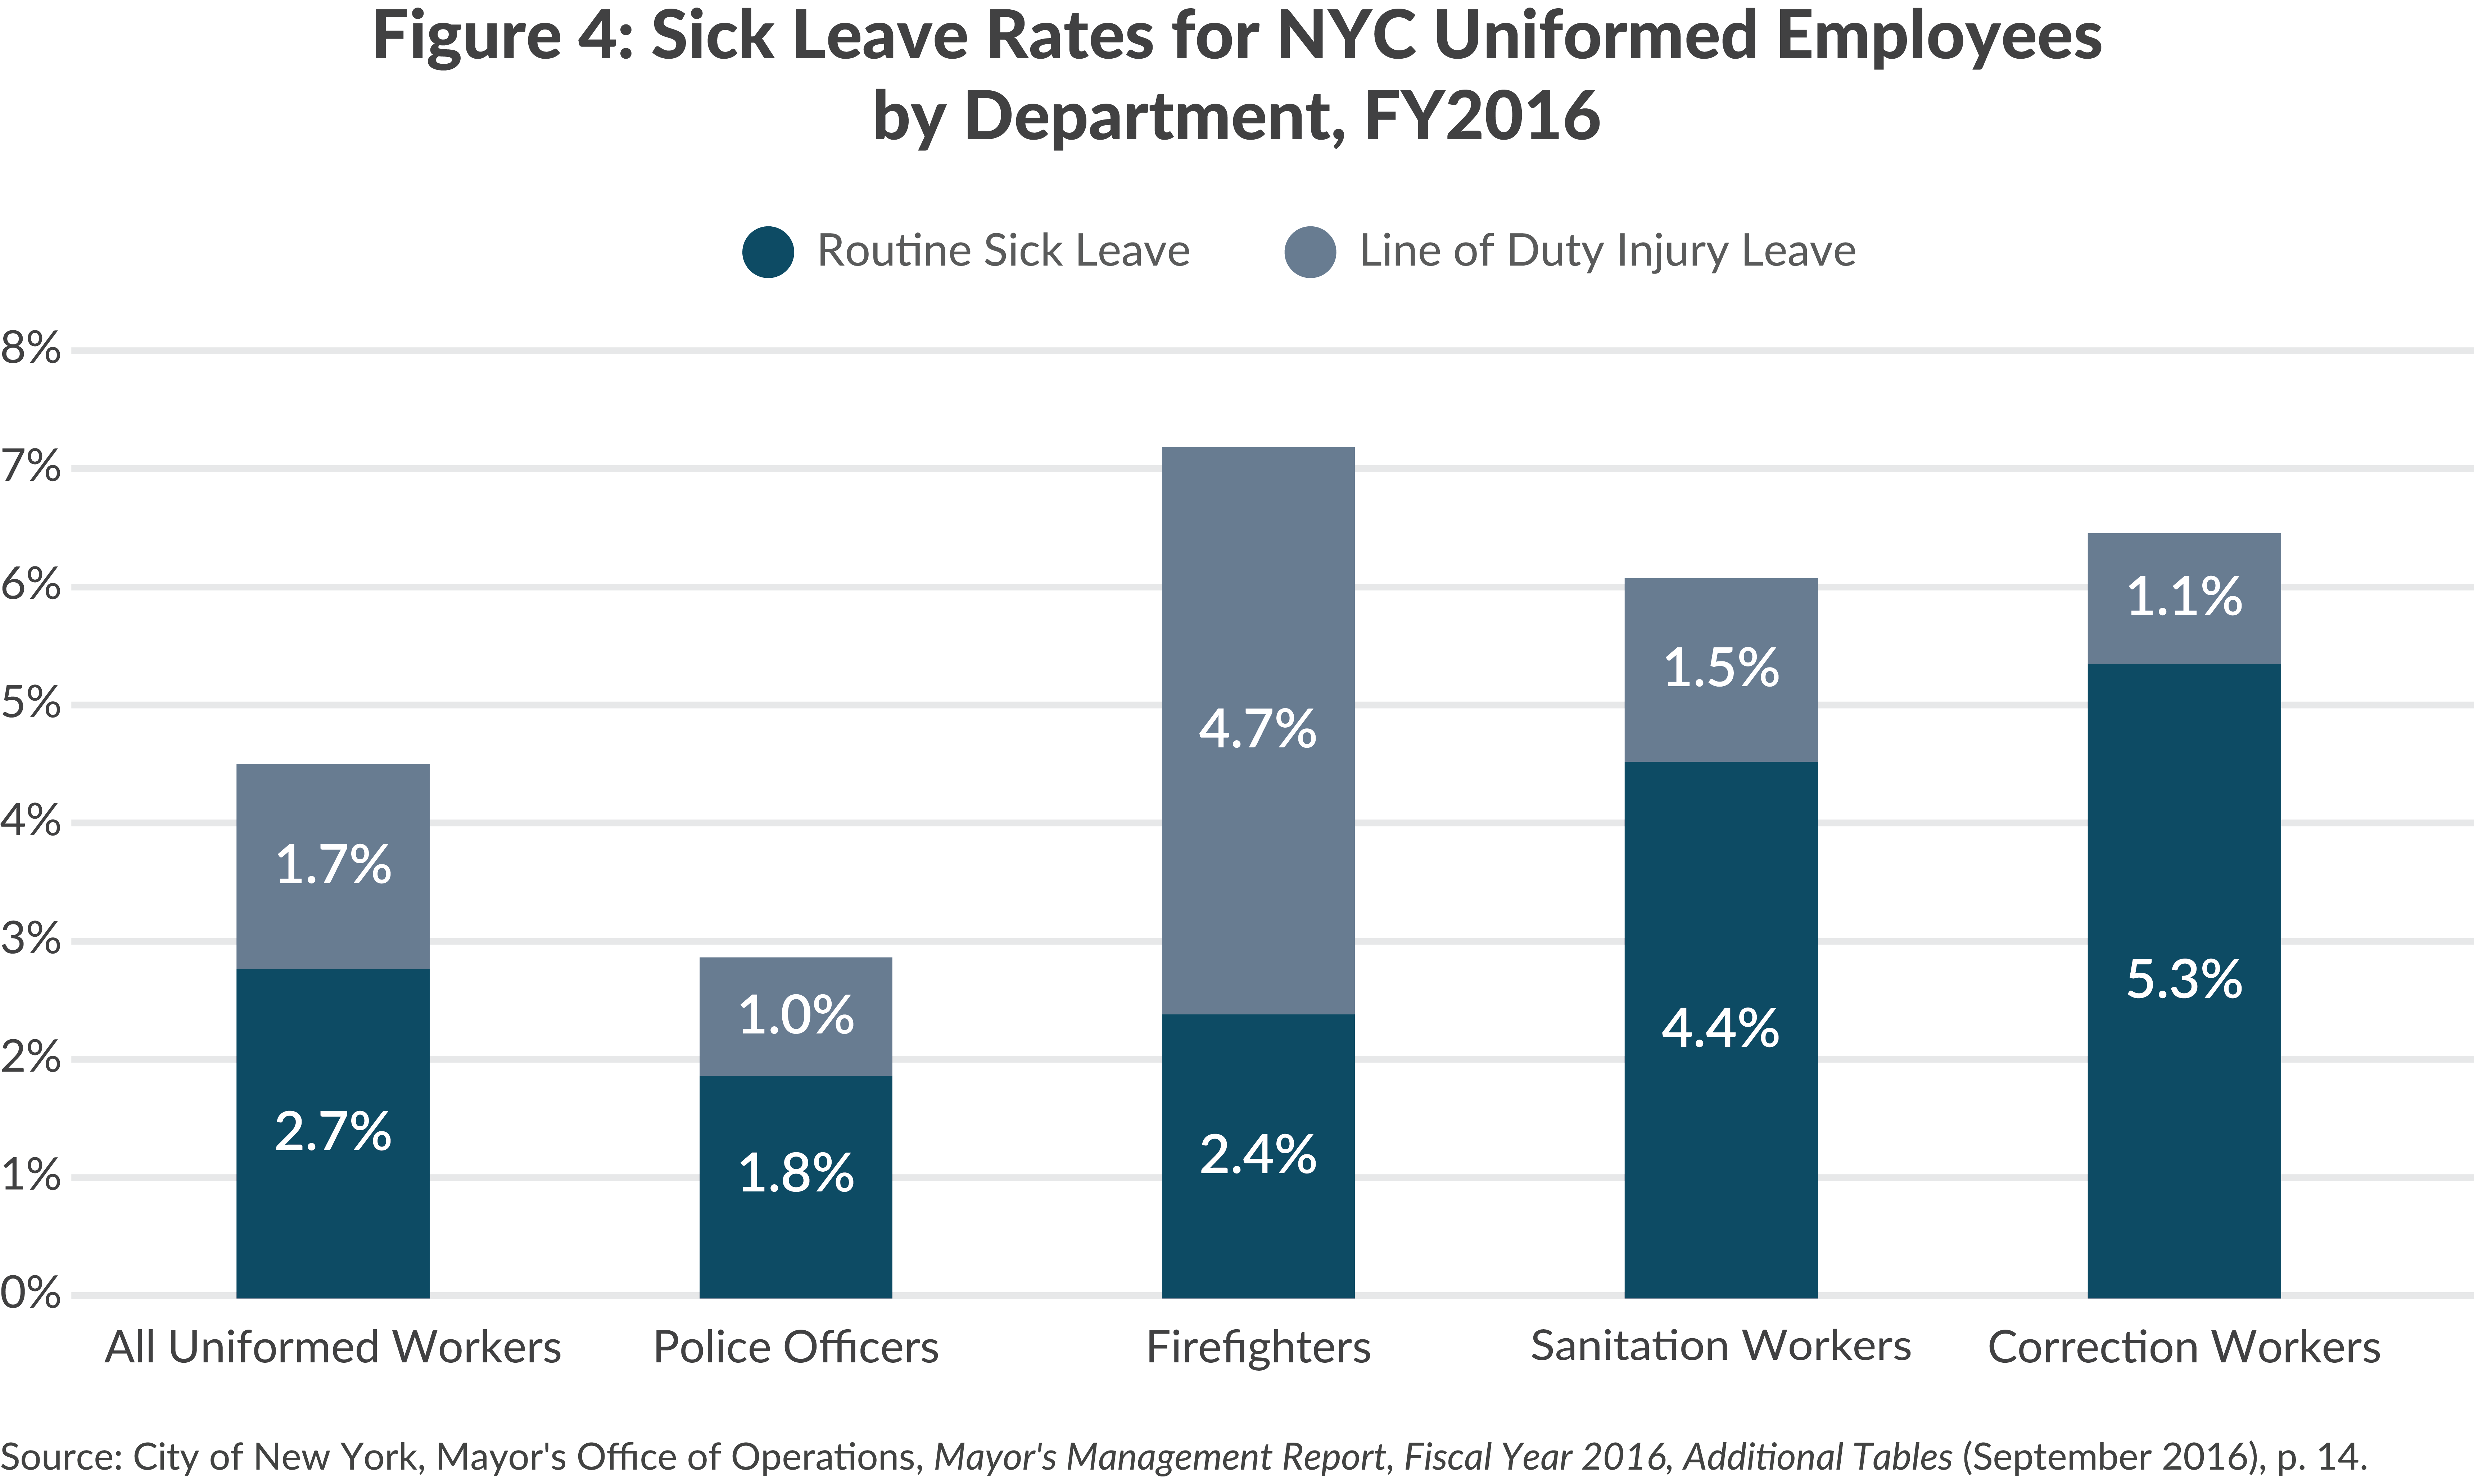 Sick Leave Rates by NYC Uniformed Department, FY2016